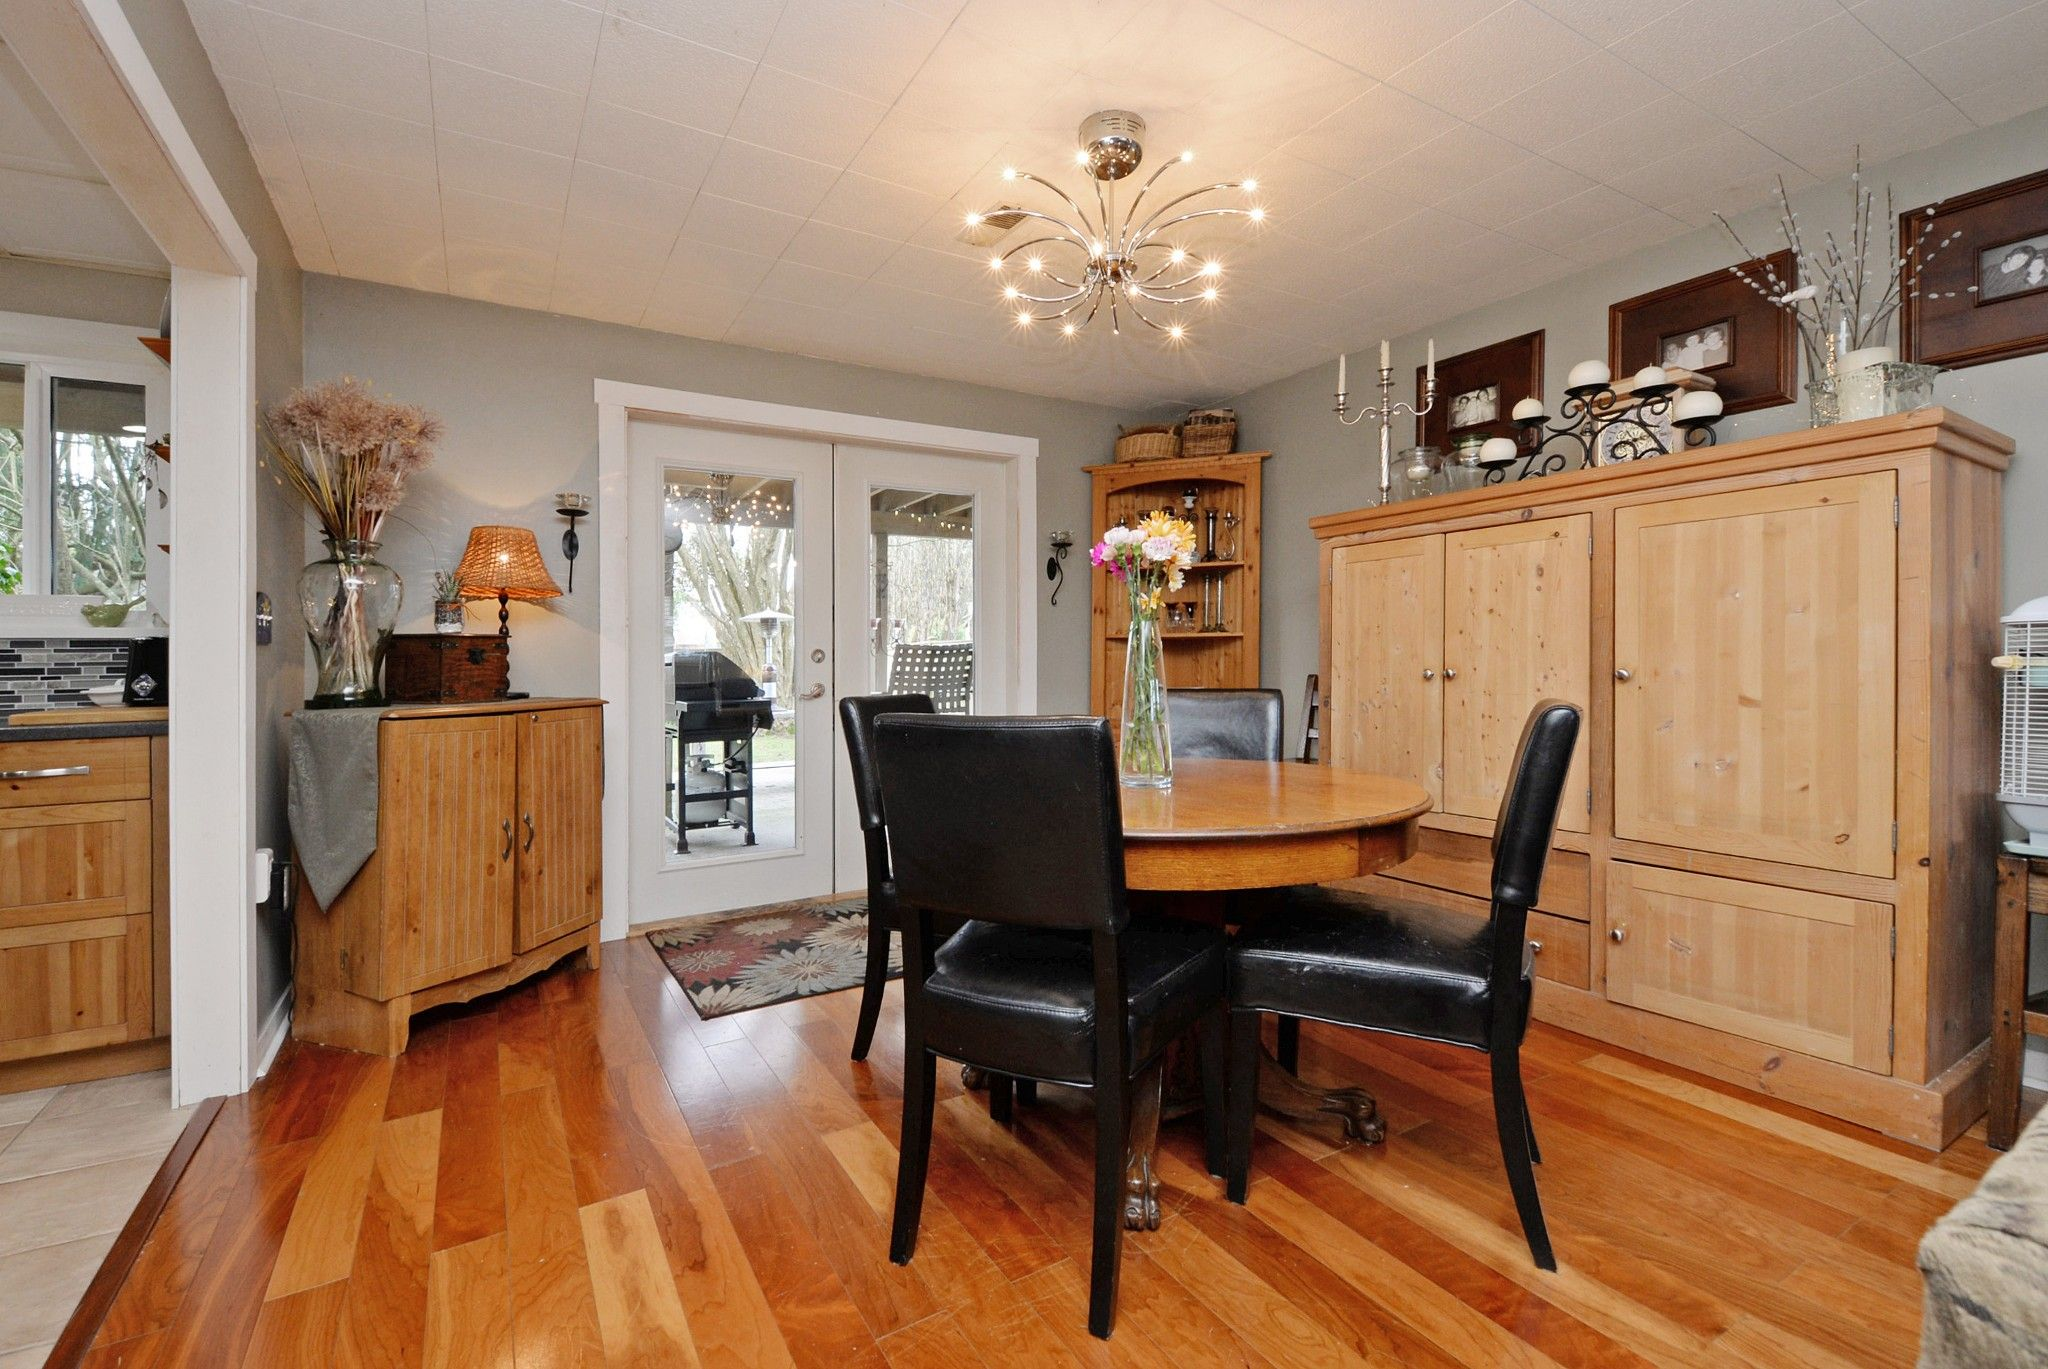 Photo 13: Photos: 5166 44 Avenue in Delta: Ladner Elementary House for sale (Ladner)  : MLS®# R2239309